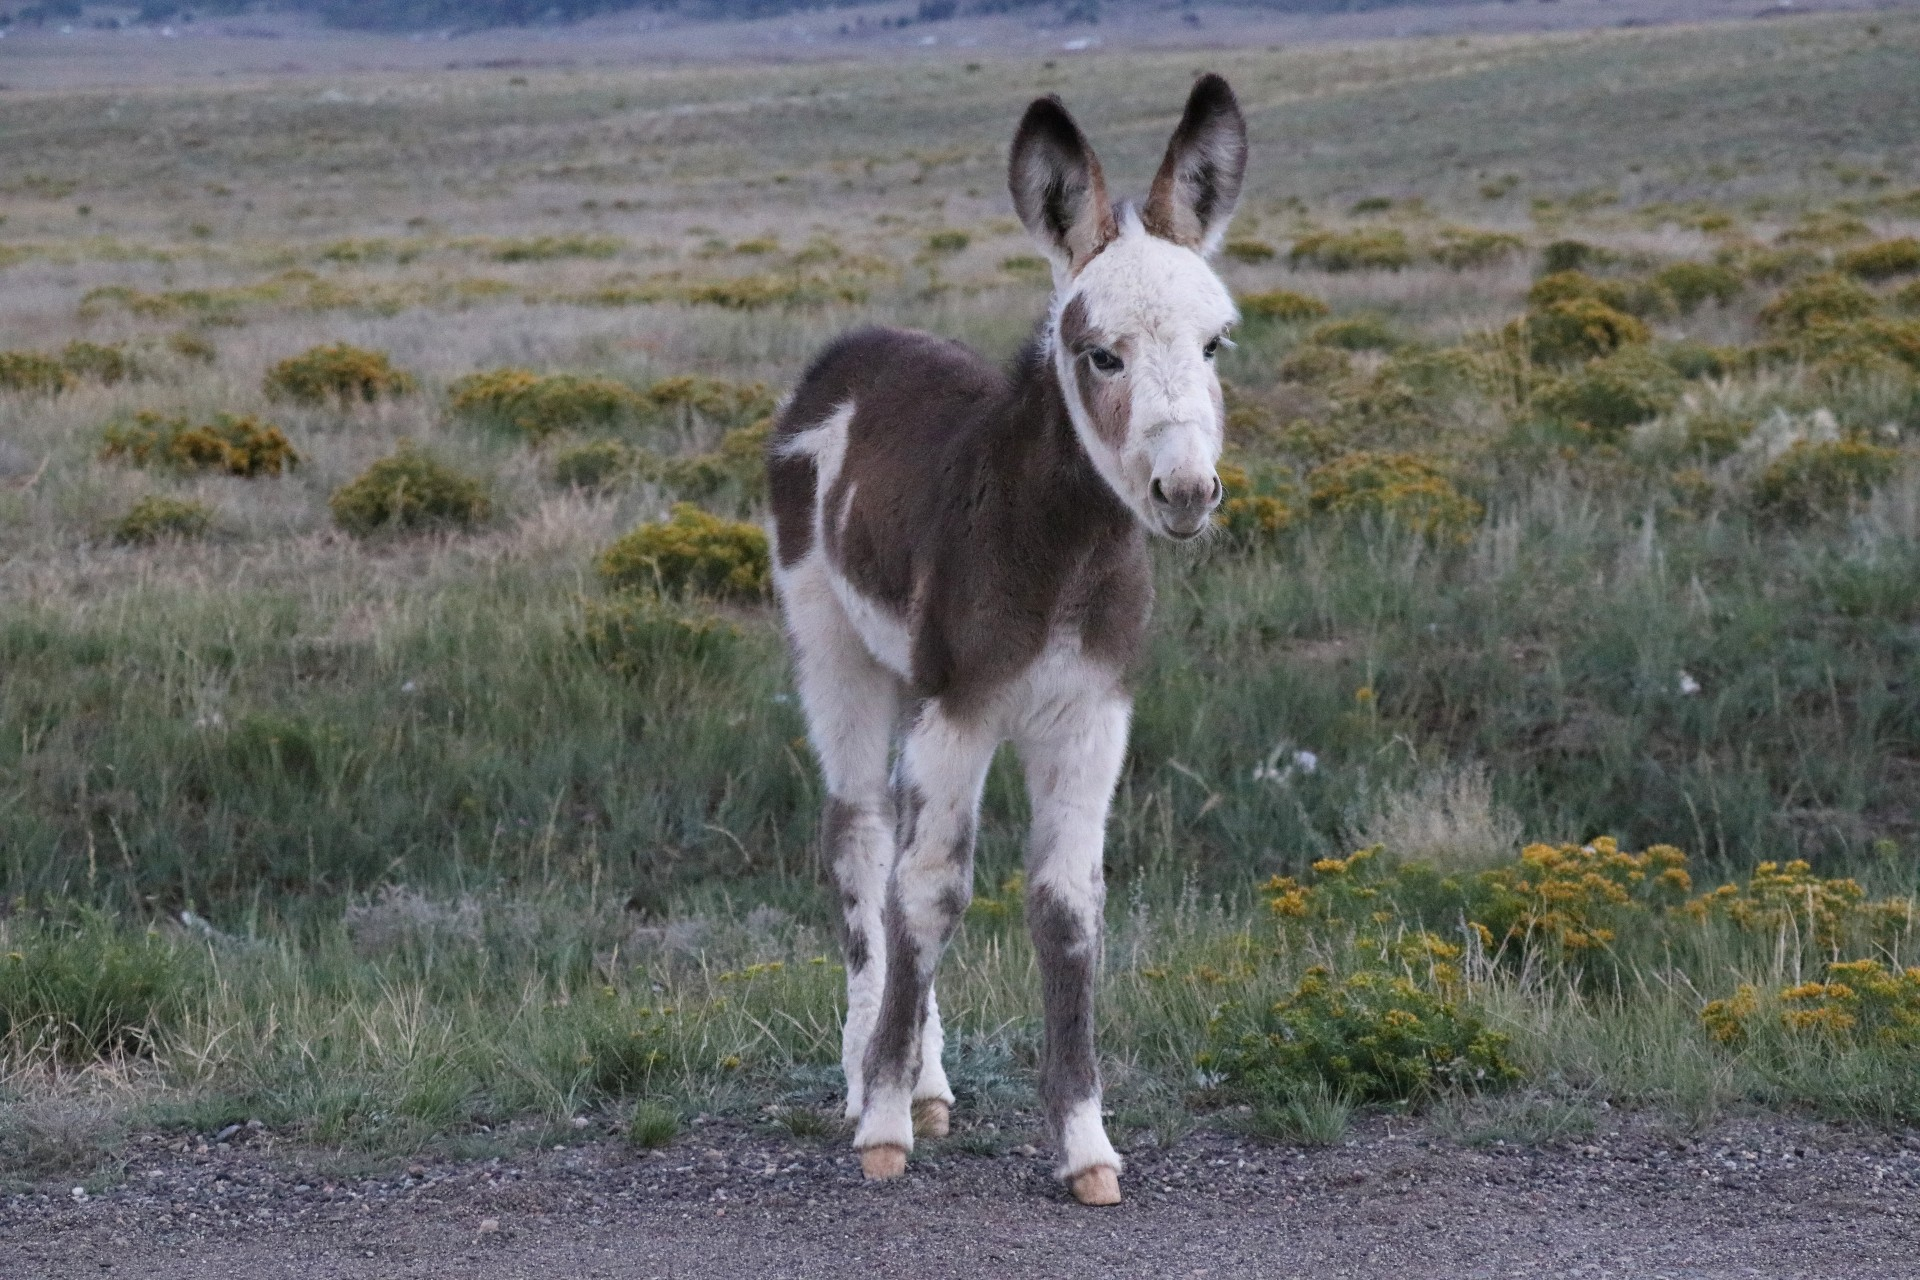 Wild Donkey Foal Photographed By Sara Turbyfill Near Eleven Mile State Park In Colorado.